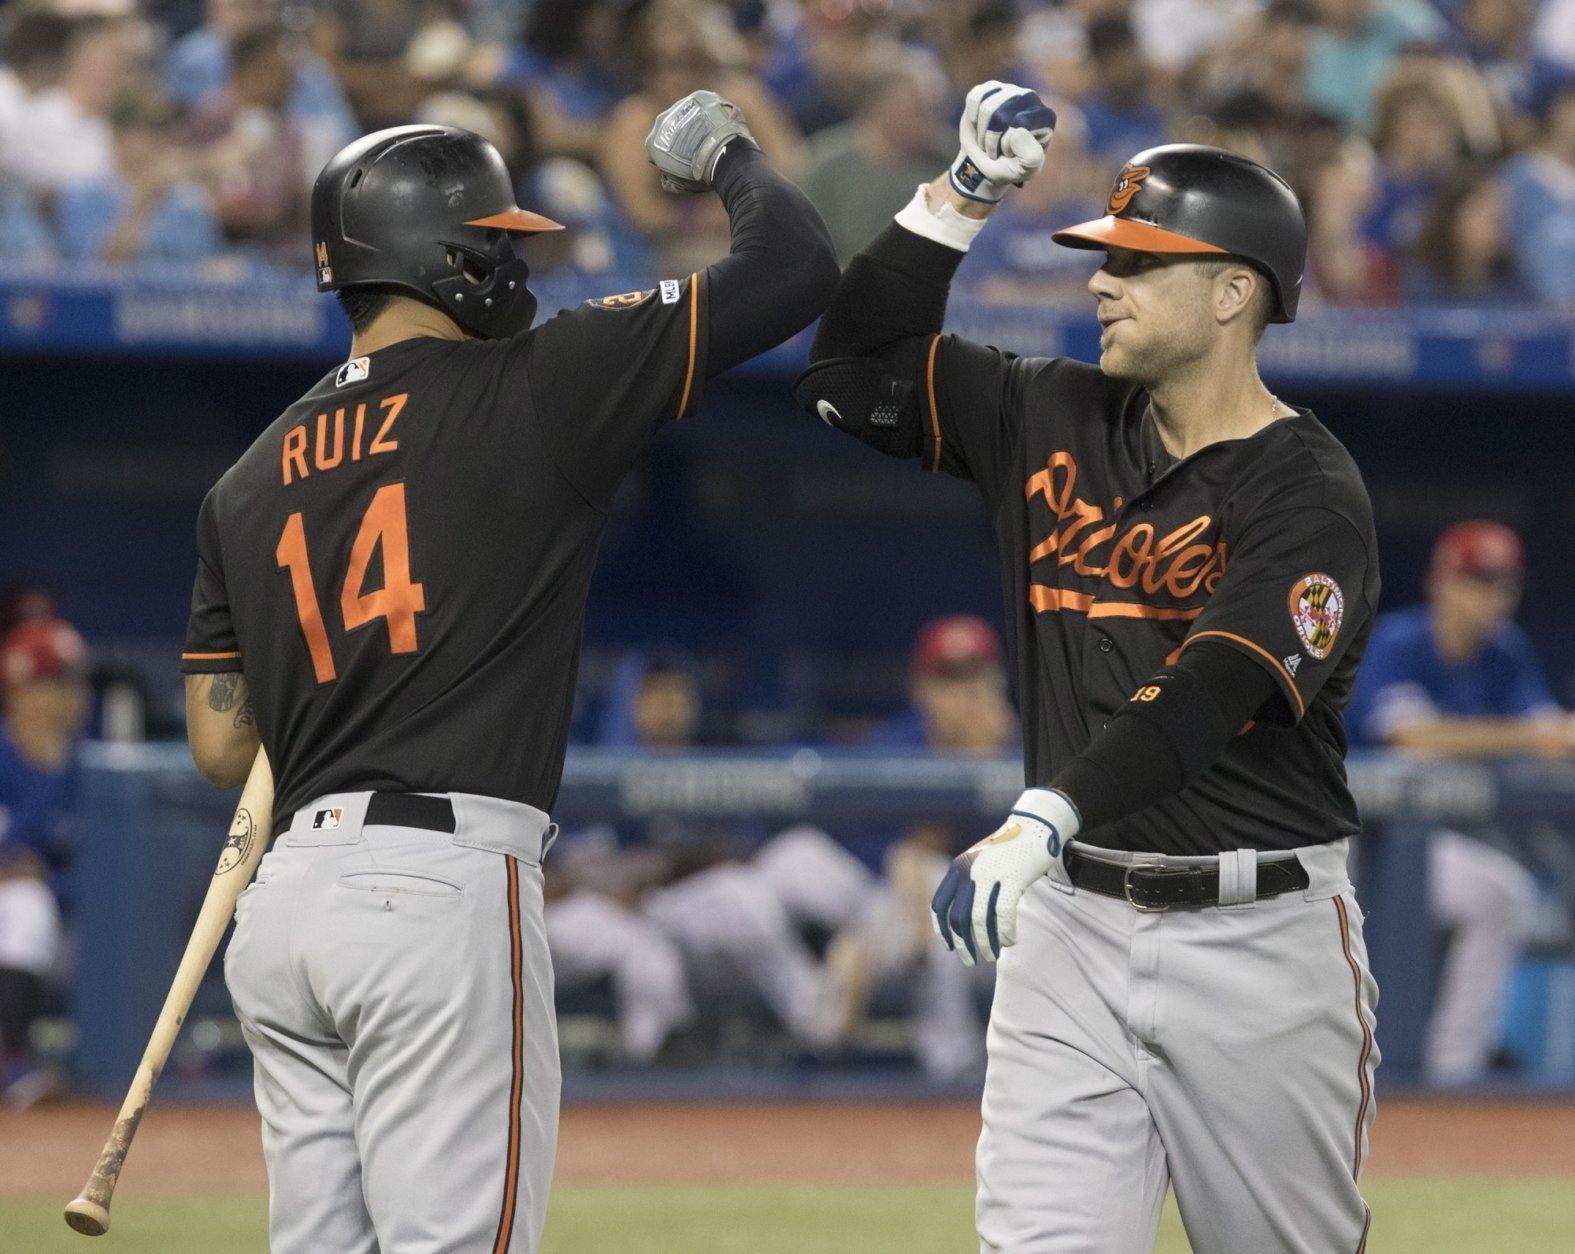 Baltimore Orioles' Chris Davis, right, is greeted by Rio Ruiz after Davis hit a home run against the Toronto Blue Jays during the second inning of a baseball game Friday, July 5, 2019, in Toronto. (Fred Thornhill/The Canadian Press via AP)